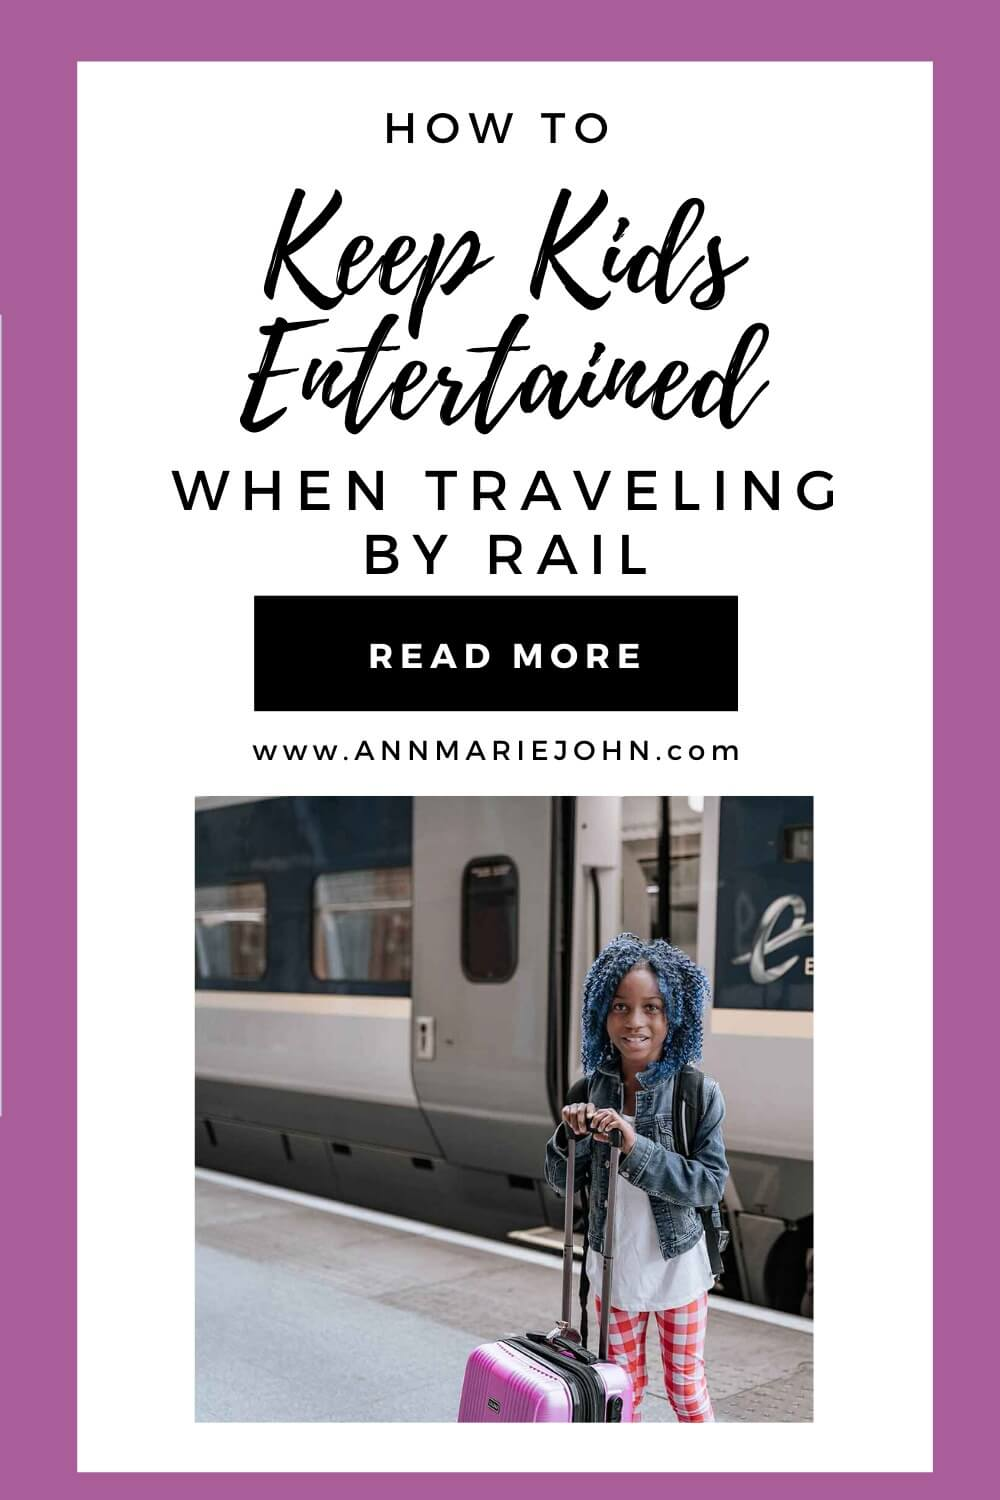 How to Keep Your Children Entertained When Traveling by Rail